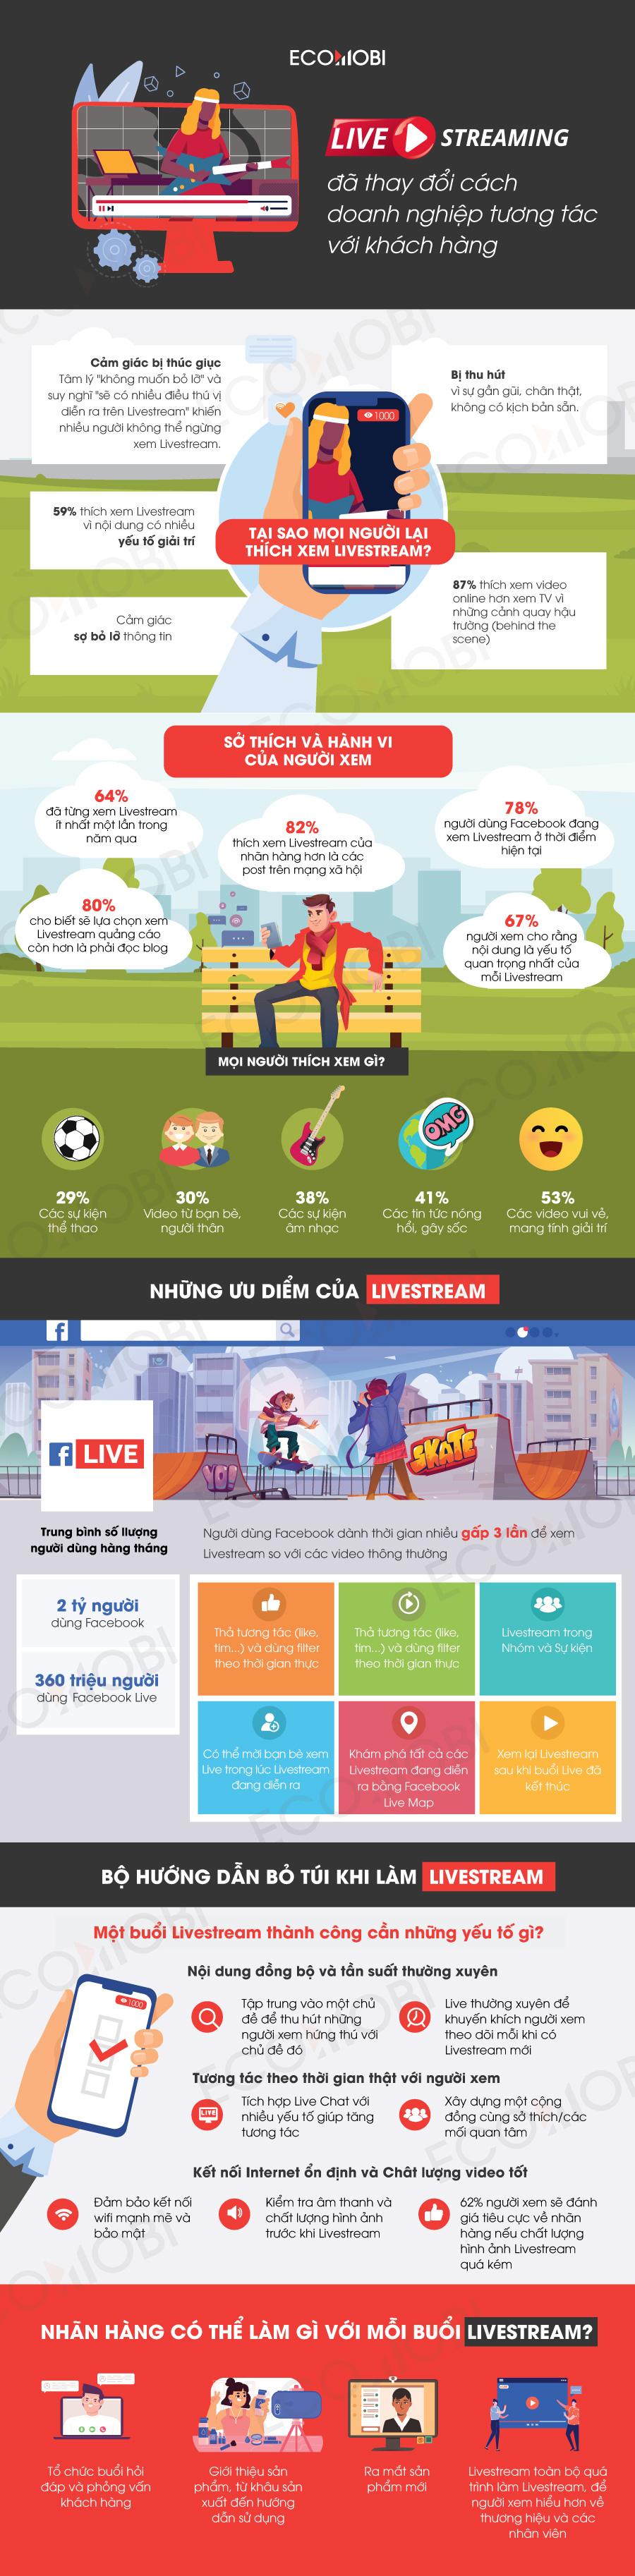 Infographic Livestream va su thay doi cach doanh nghiep tuong tac voi khach hang